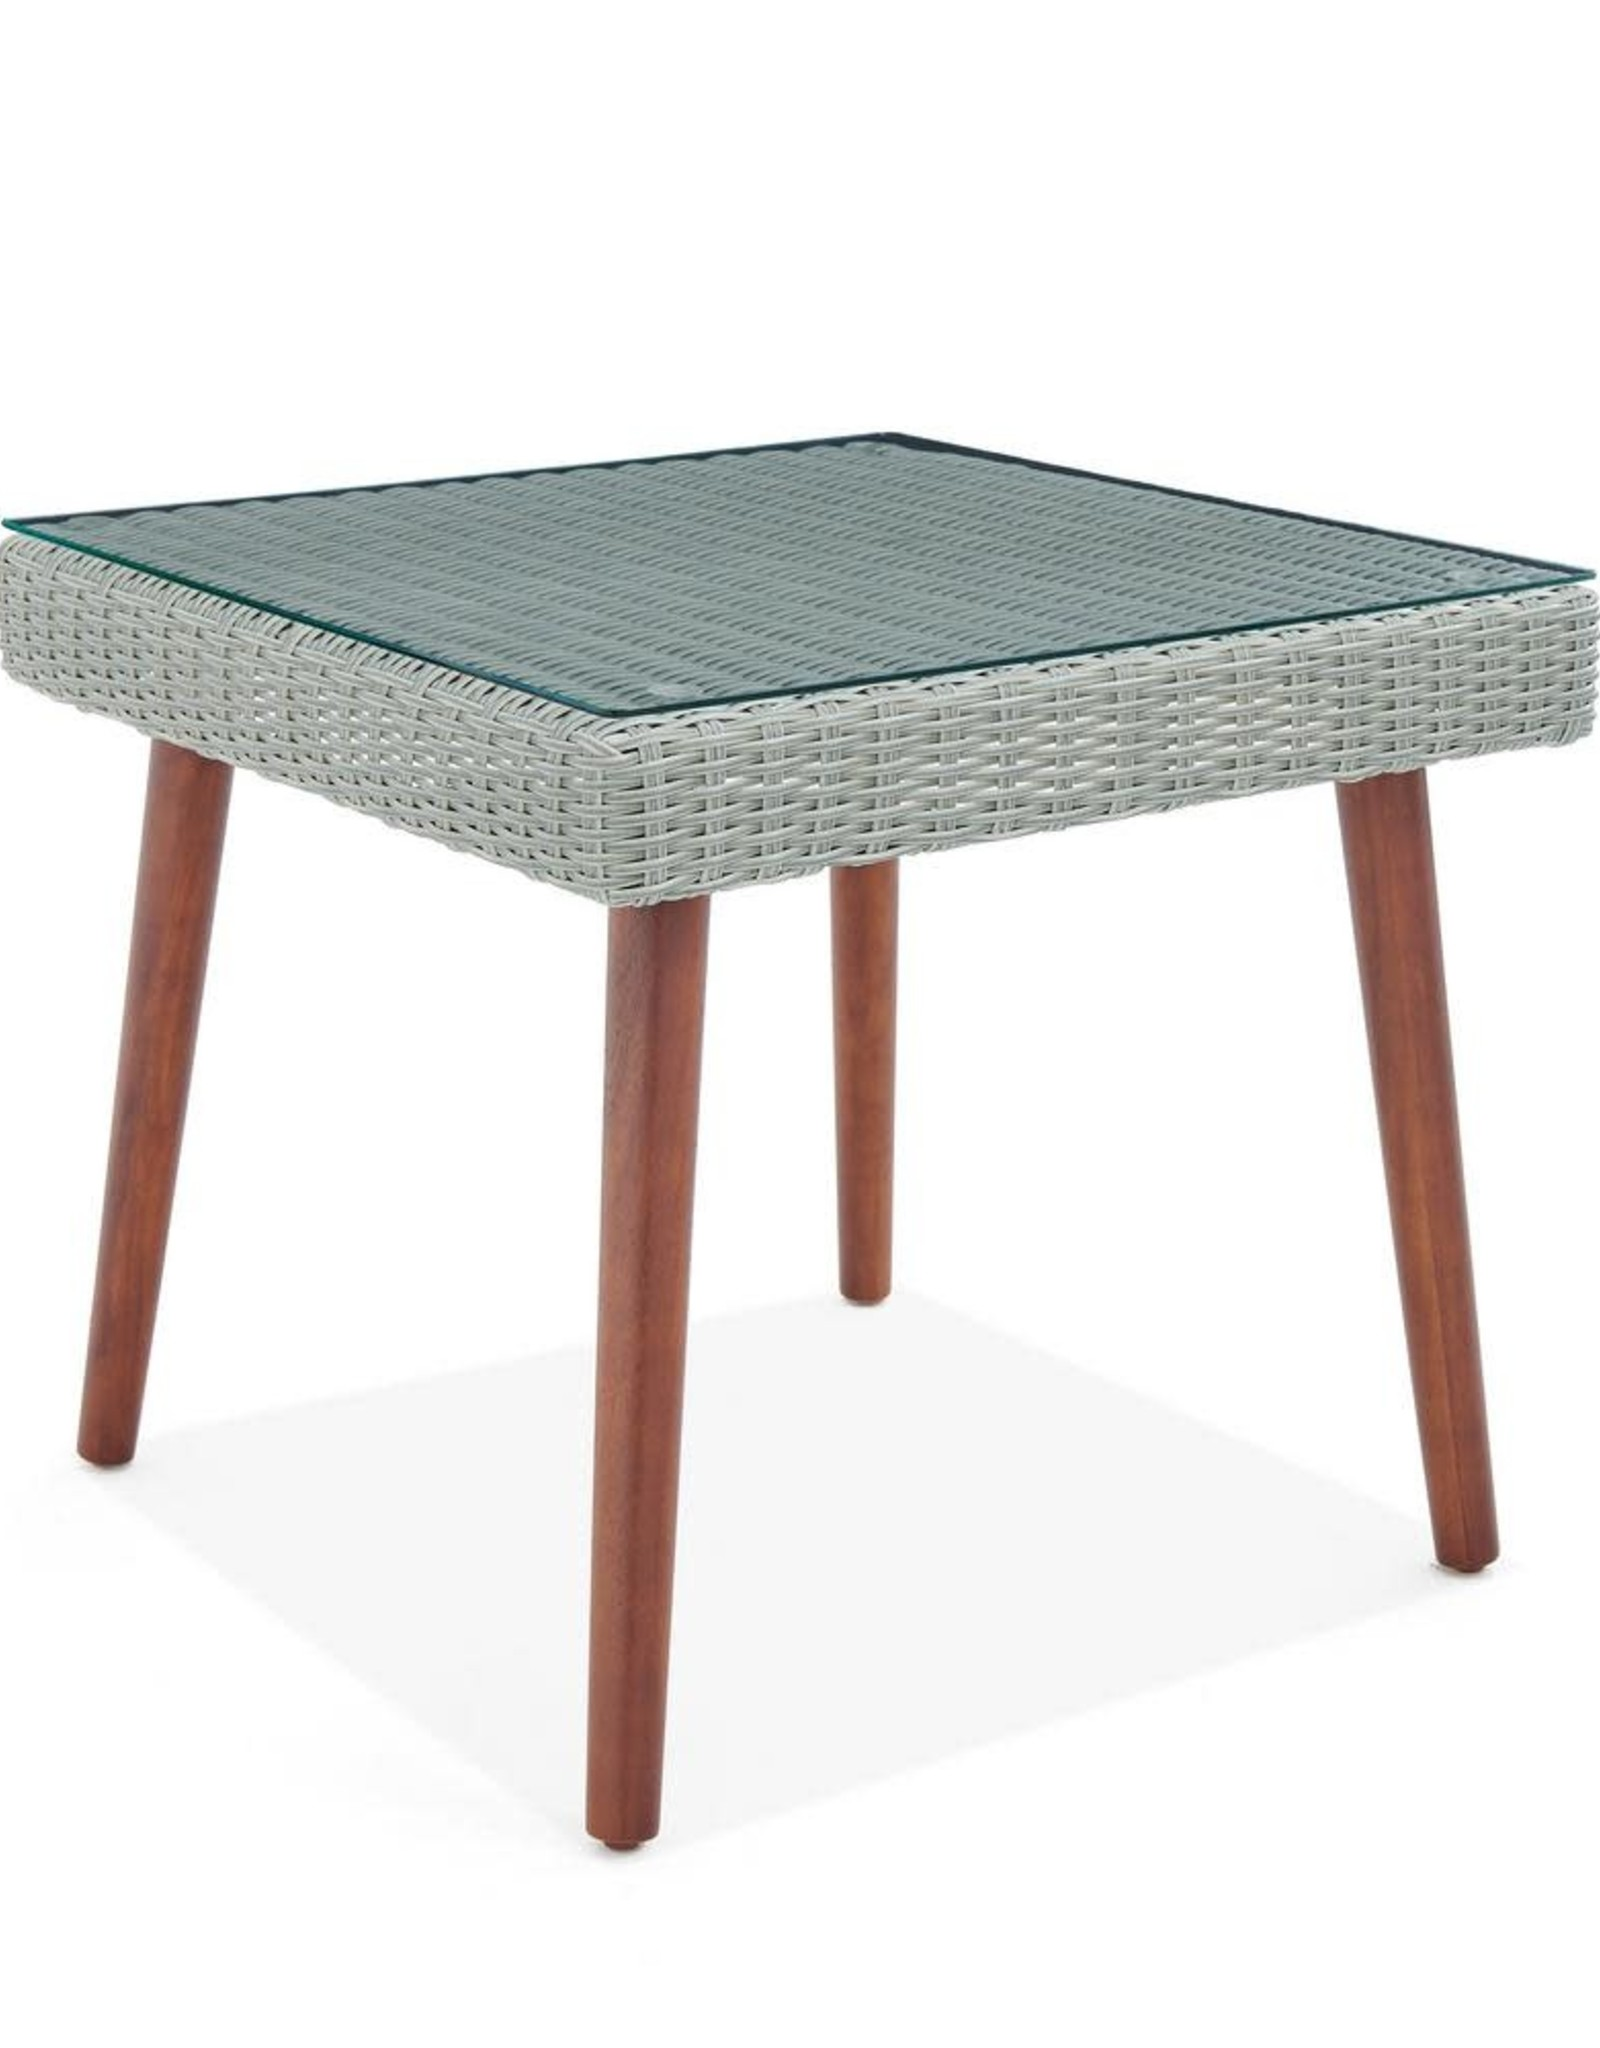 Alaterre Furniture Albany Brown Square Wicker Outdoor Accent Table